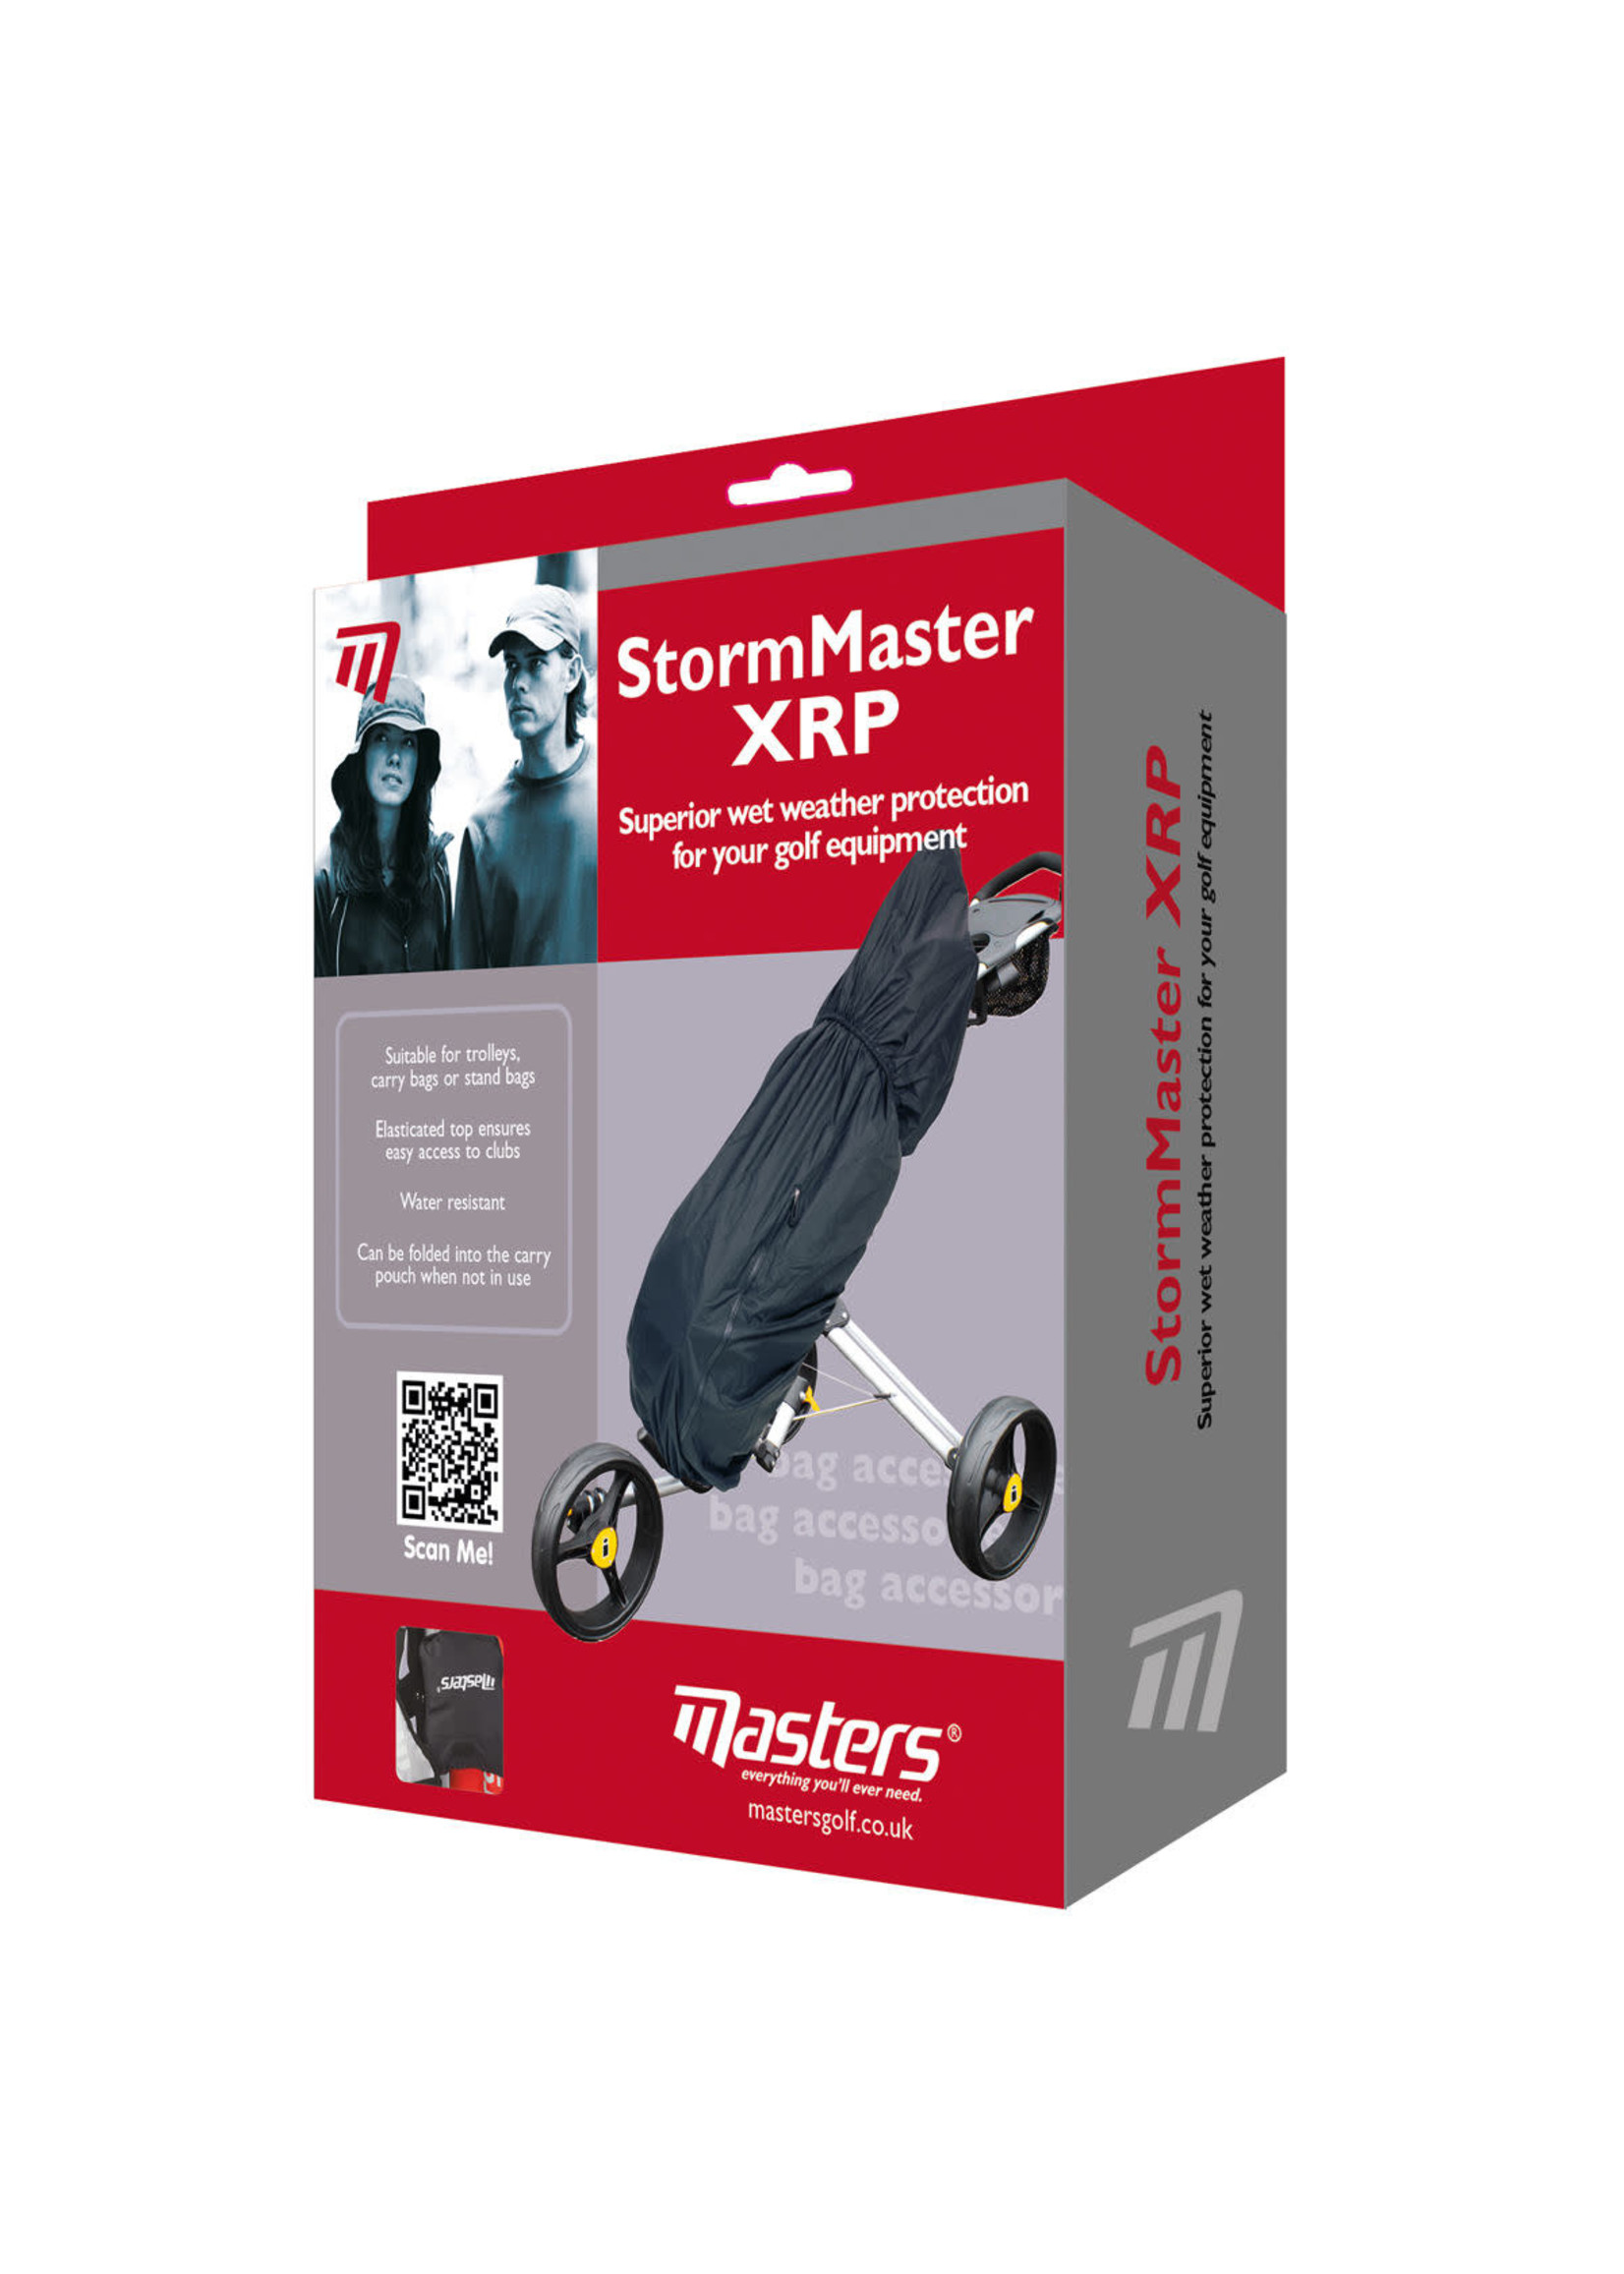 Masters Masters Storm Master XRP Golf Bag Cover